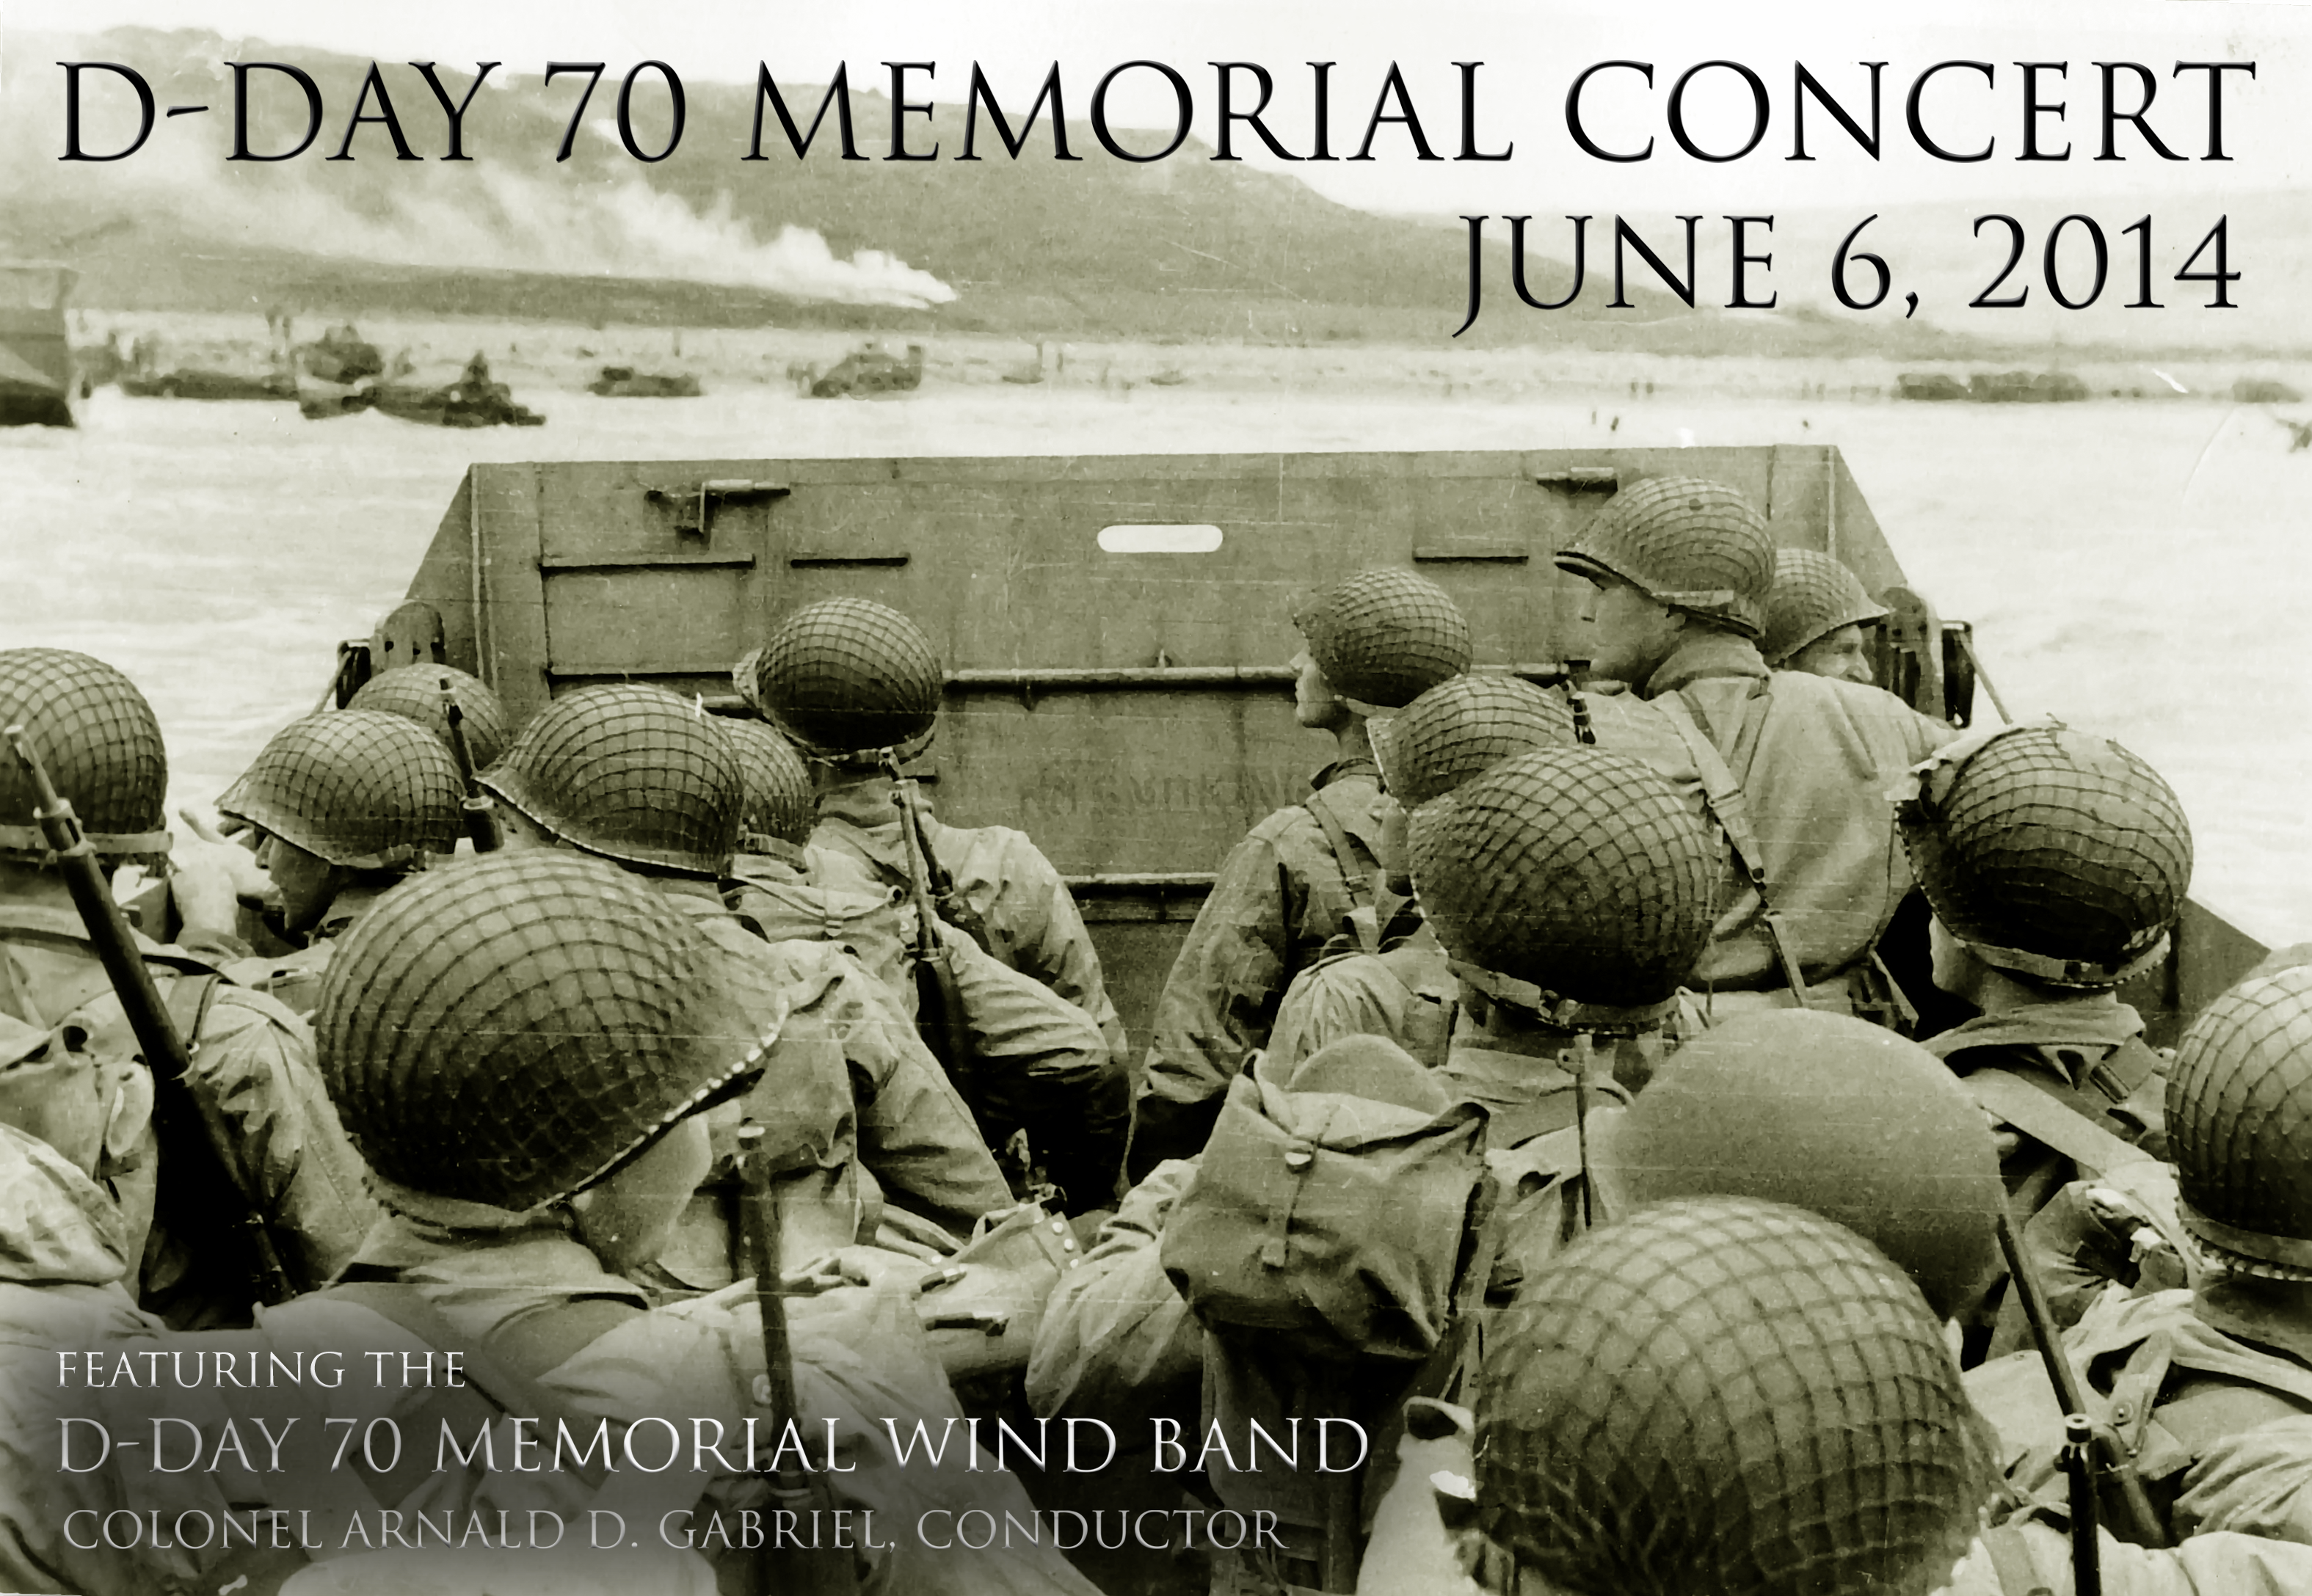 http://dday70concerts.files.wordpress.com/2012/10/d-day-70-memorial-main-header2.png